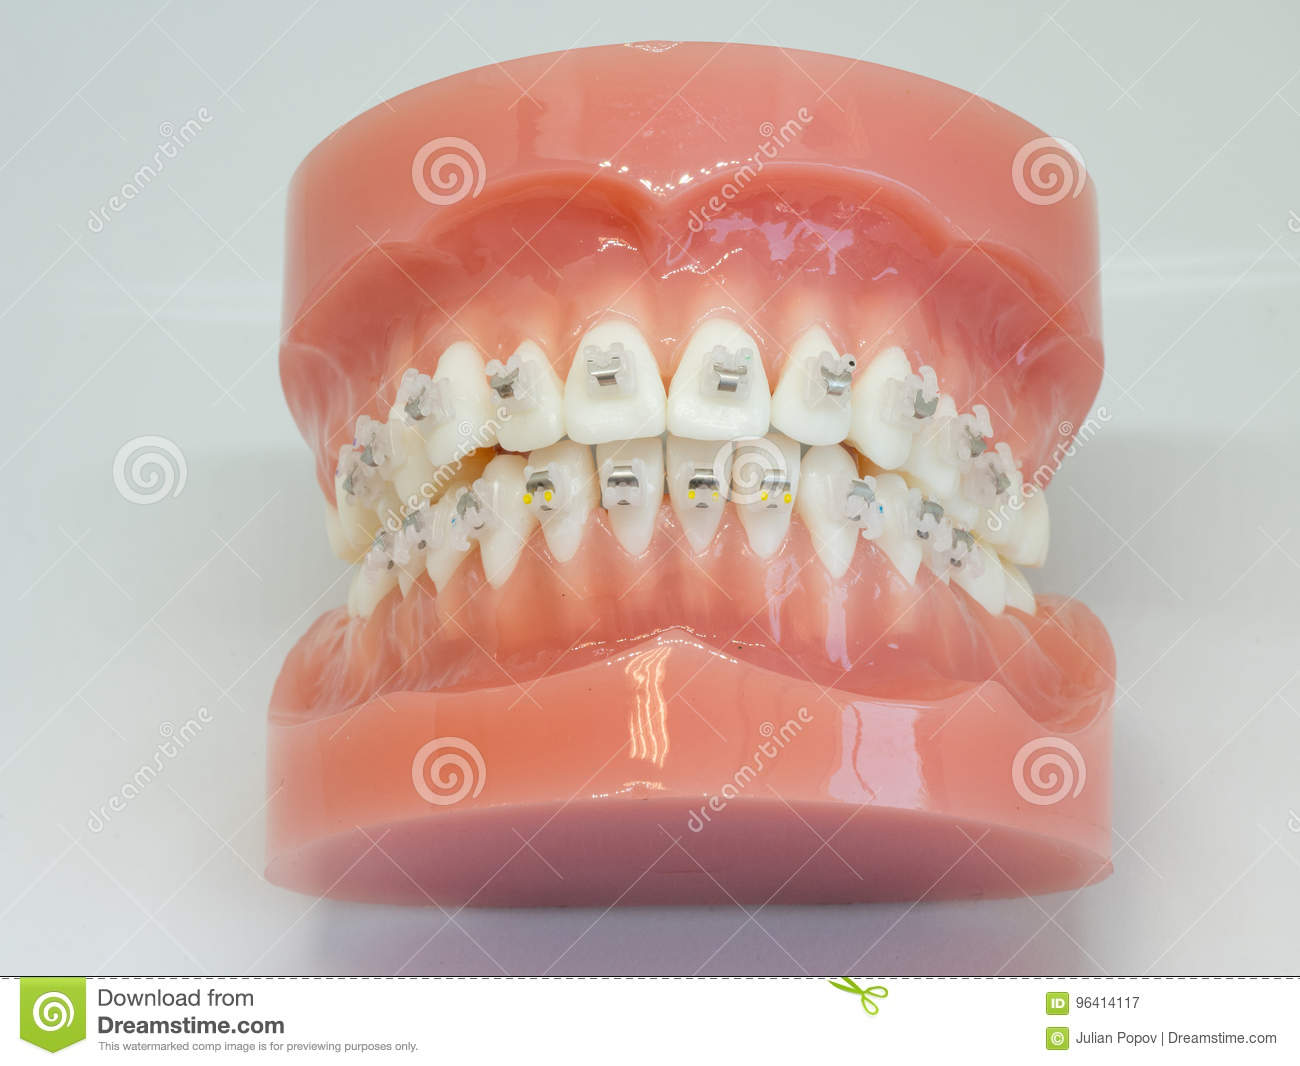 Terrific Artificial Model Of Human Jaw With Wire Colorful Braces Attached Wiring Digital Resources Cettecompassionincorg